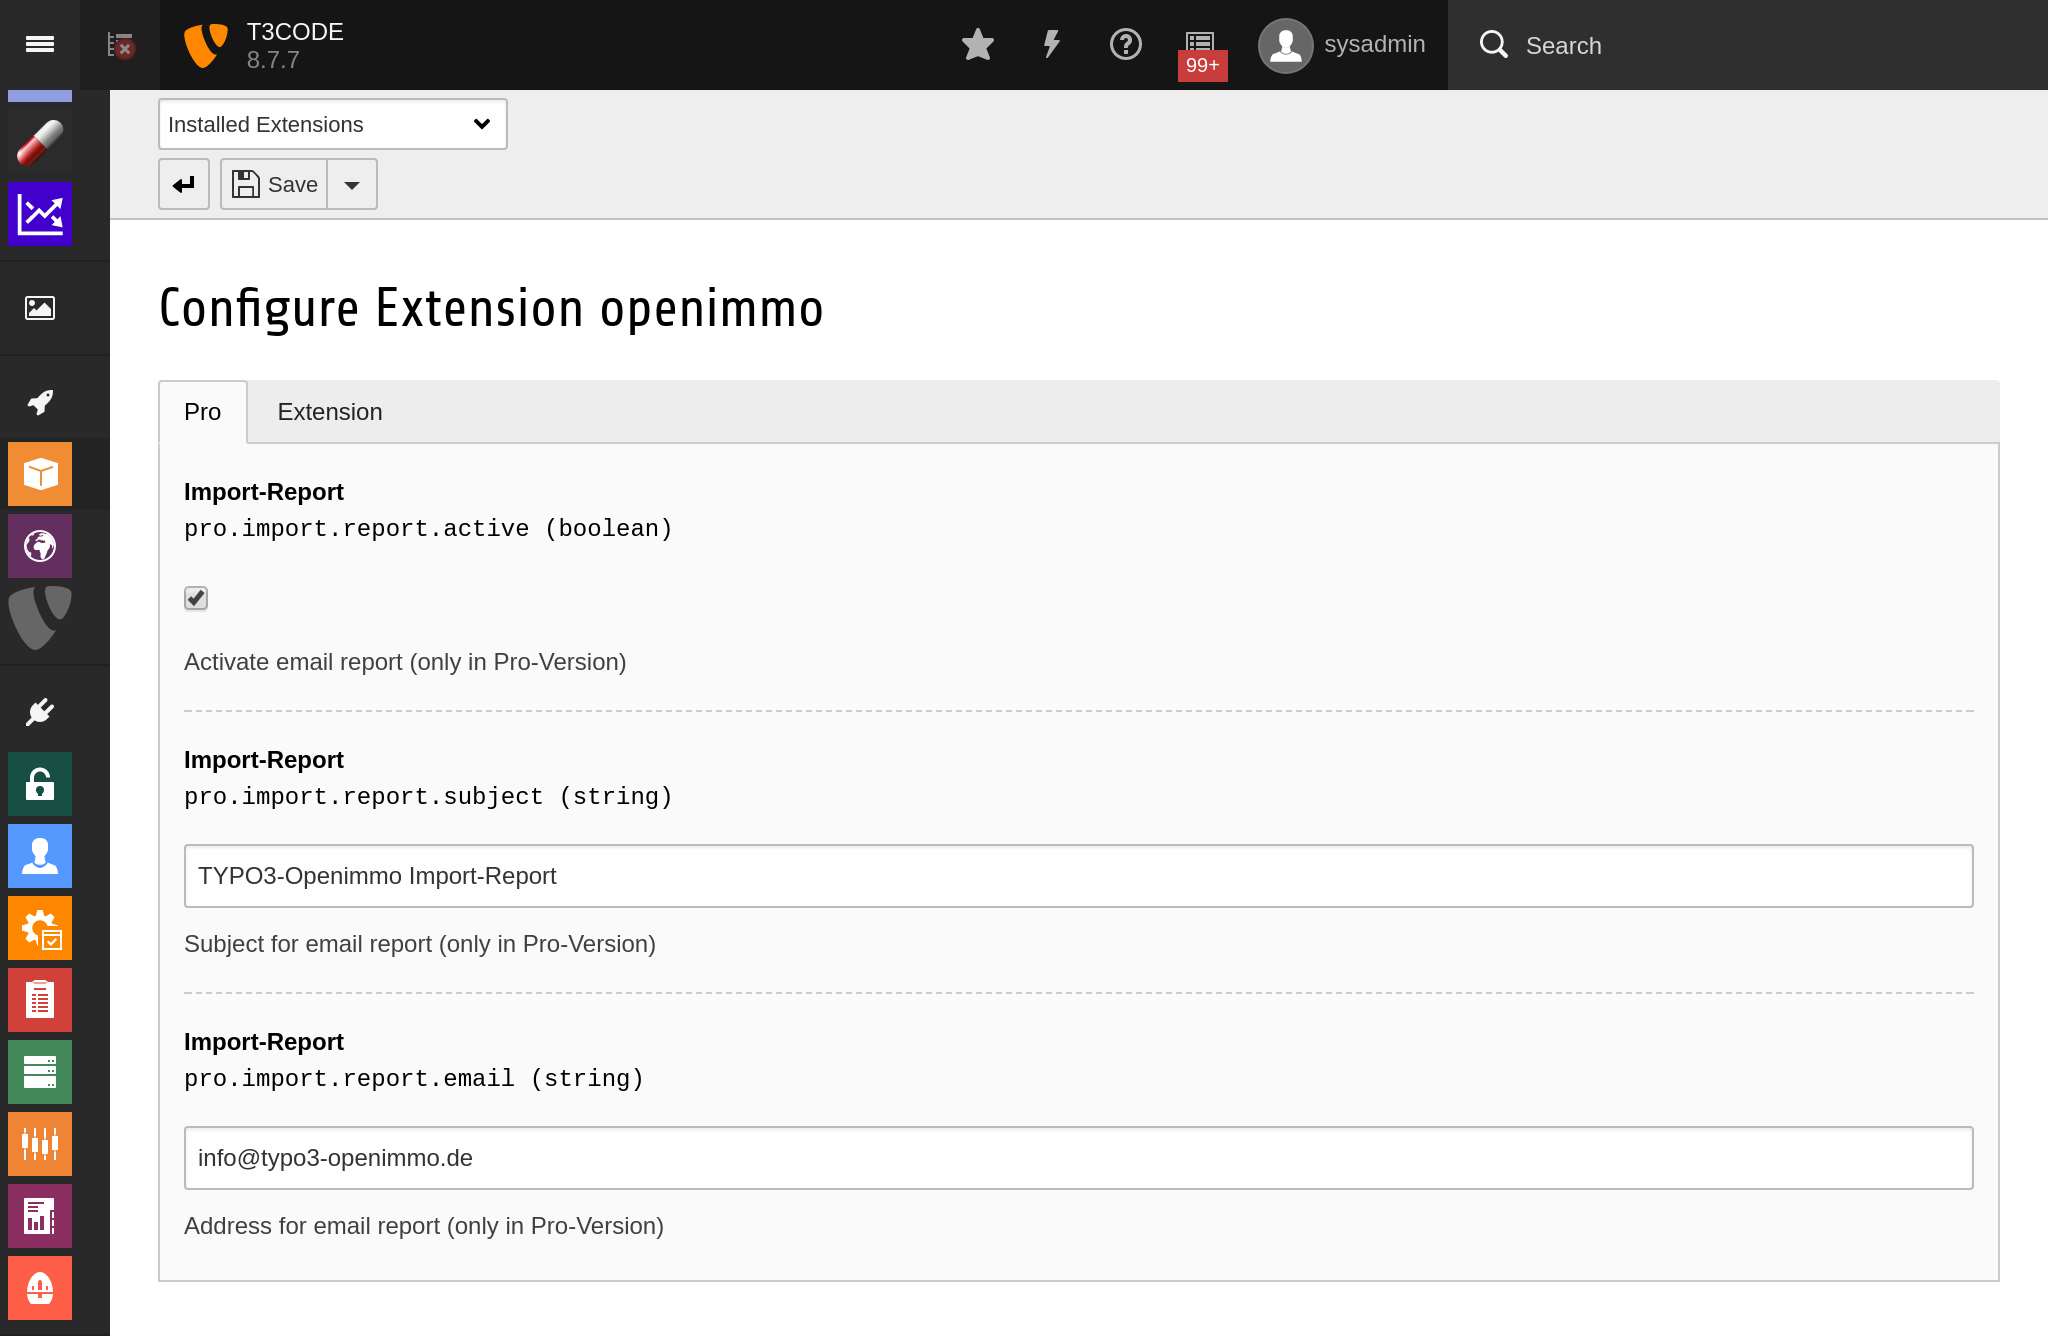 PRO settings for OpenImmo extension